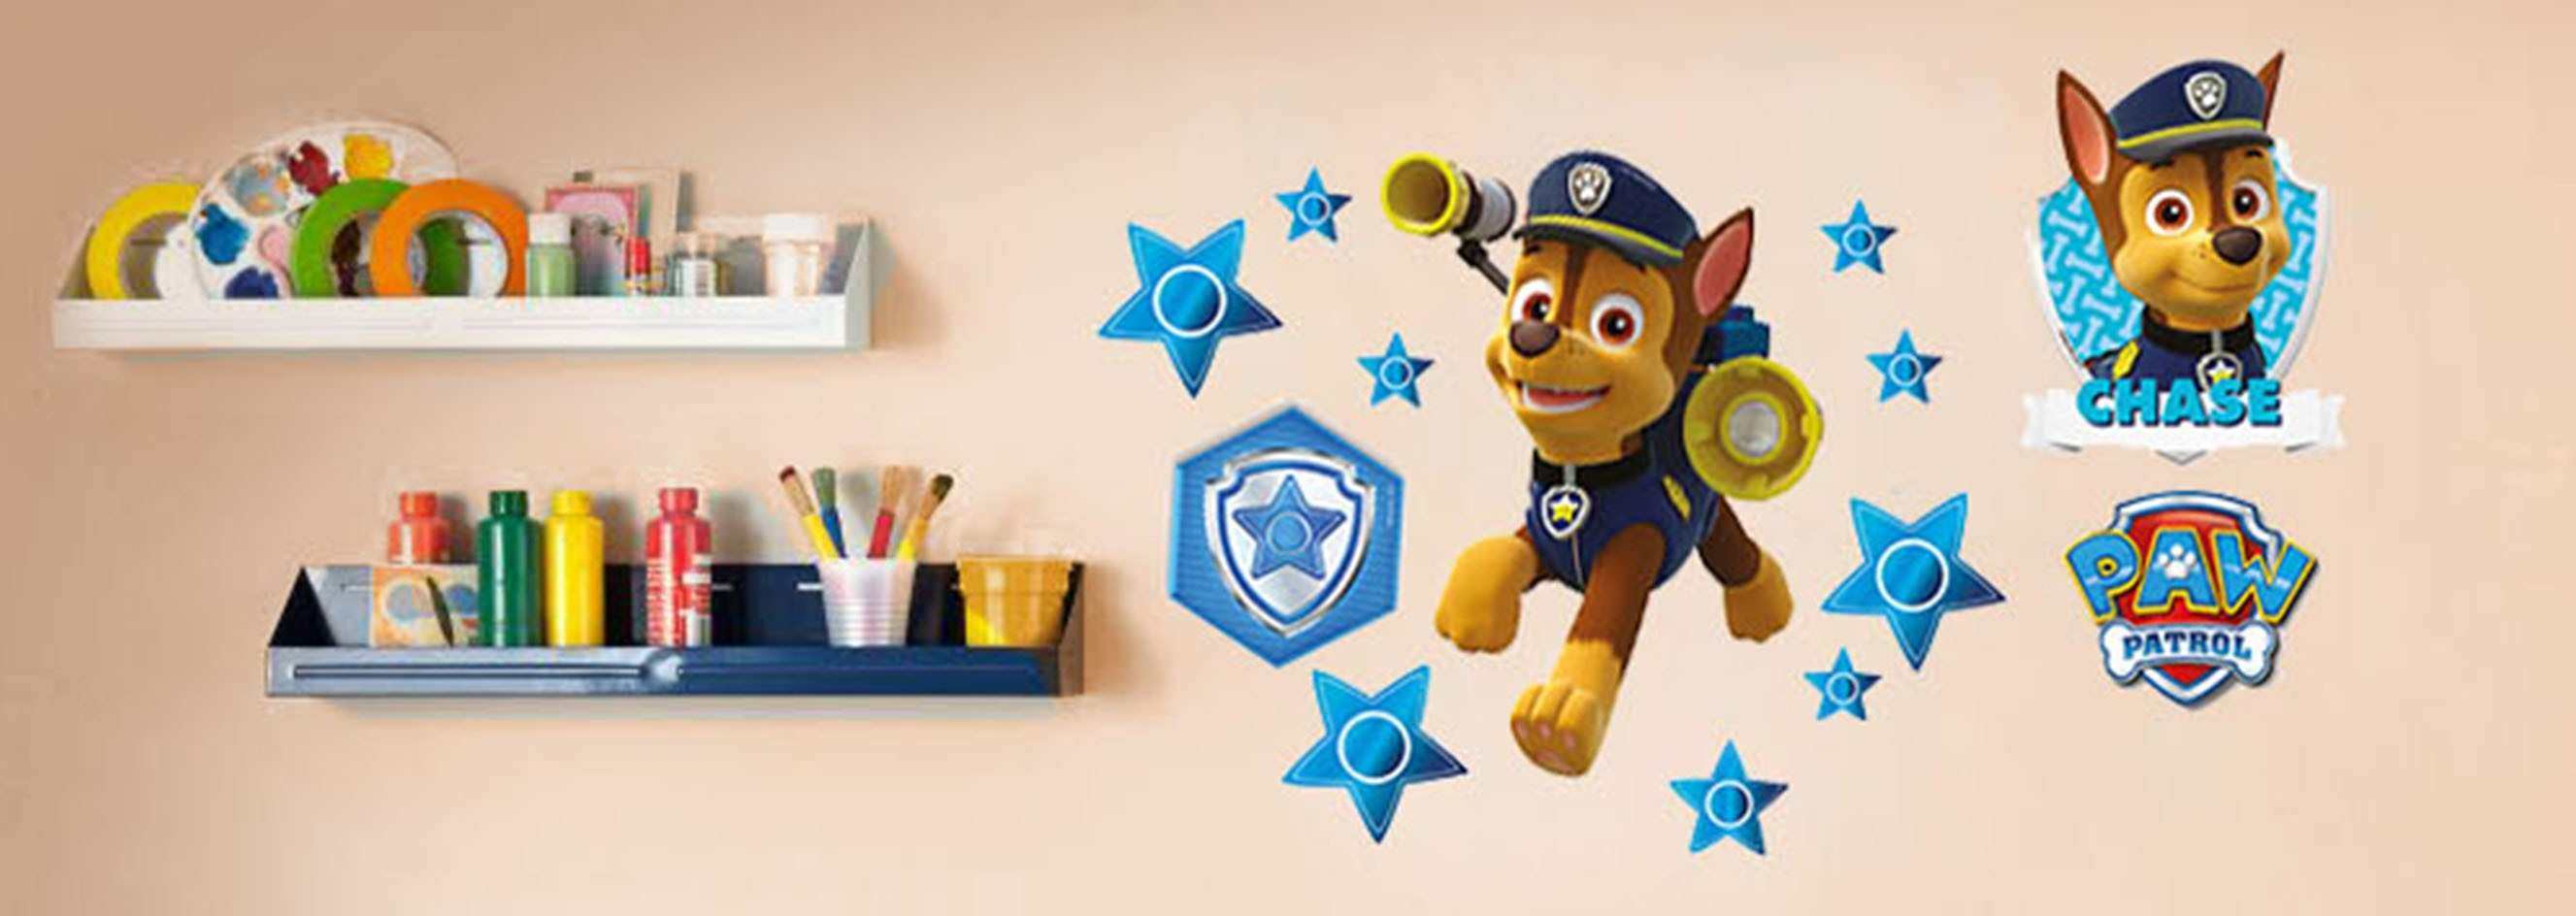 Pirate Wall Decals Awesome Paw Patrol Chase Wall Stickers And